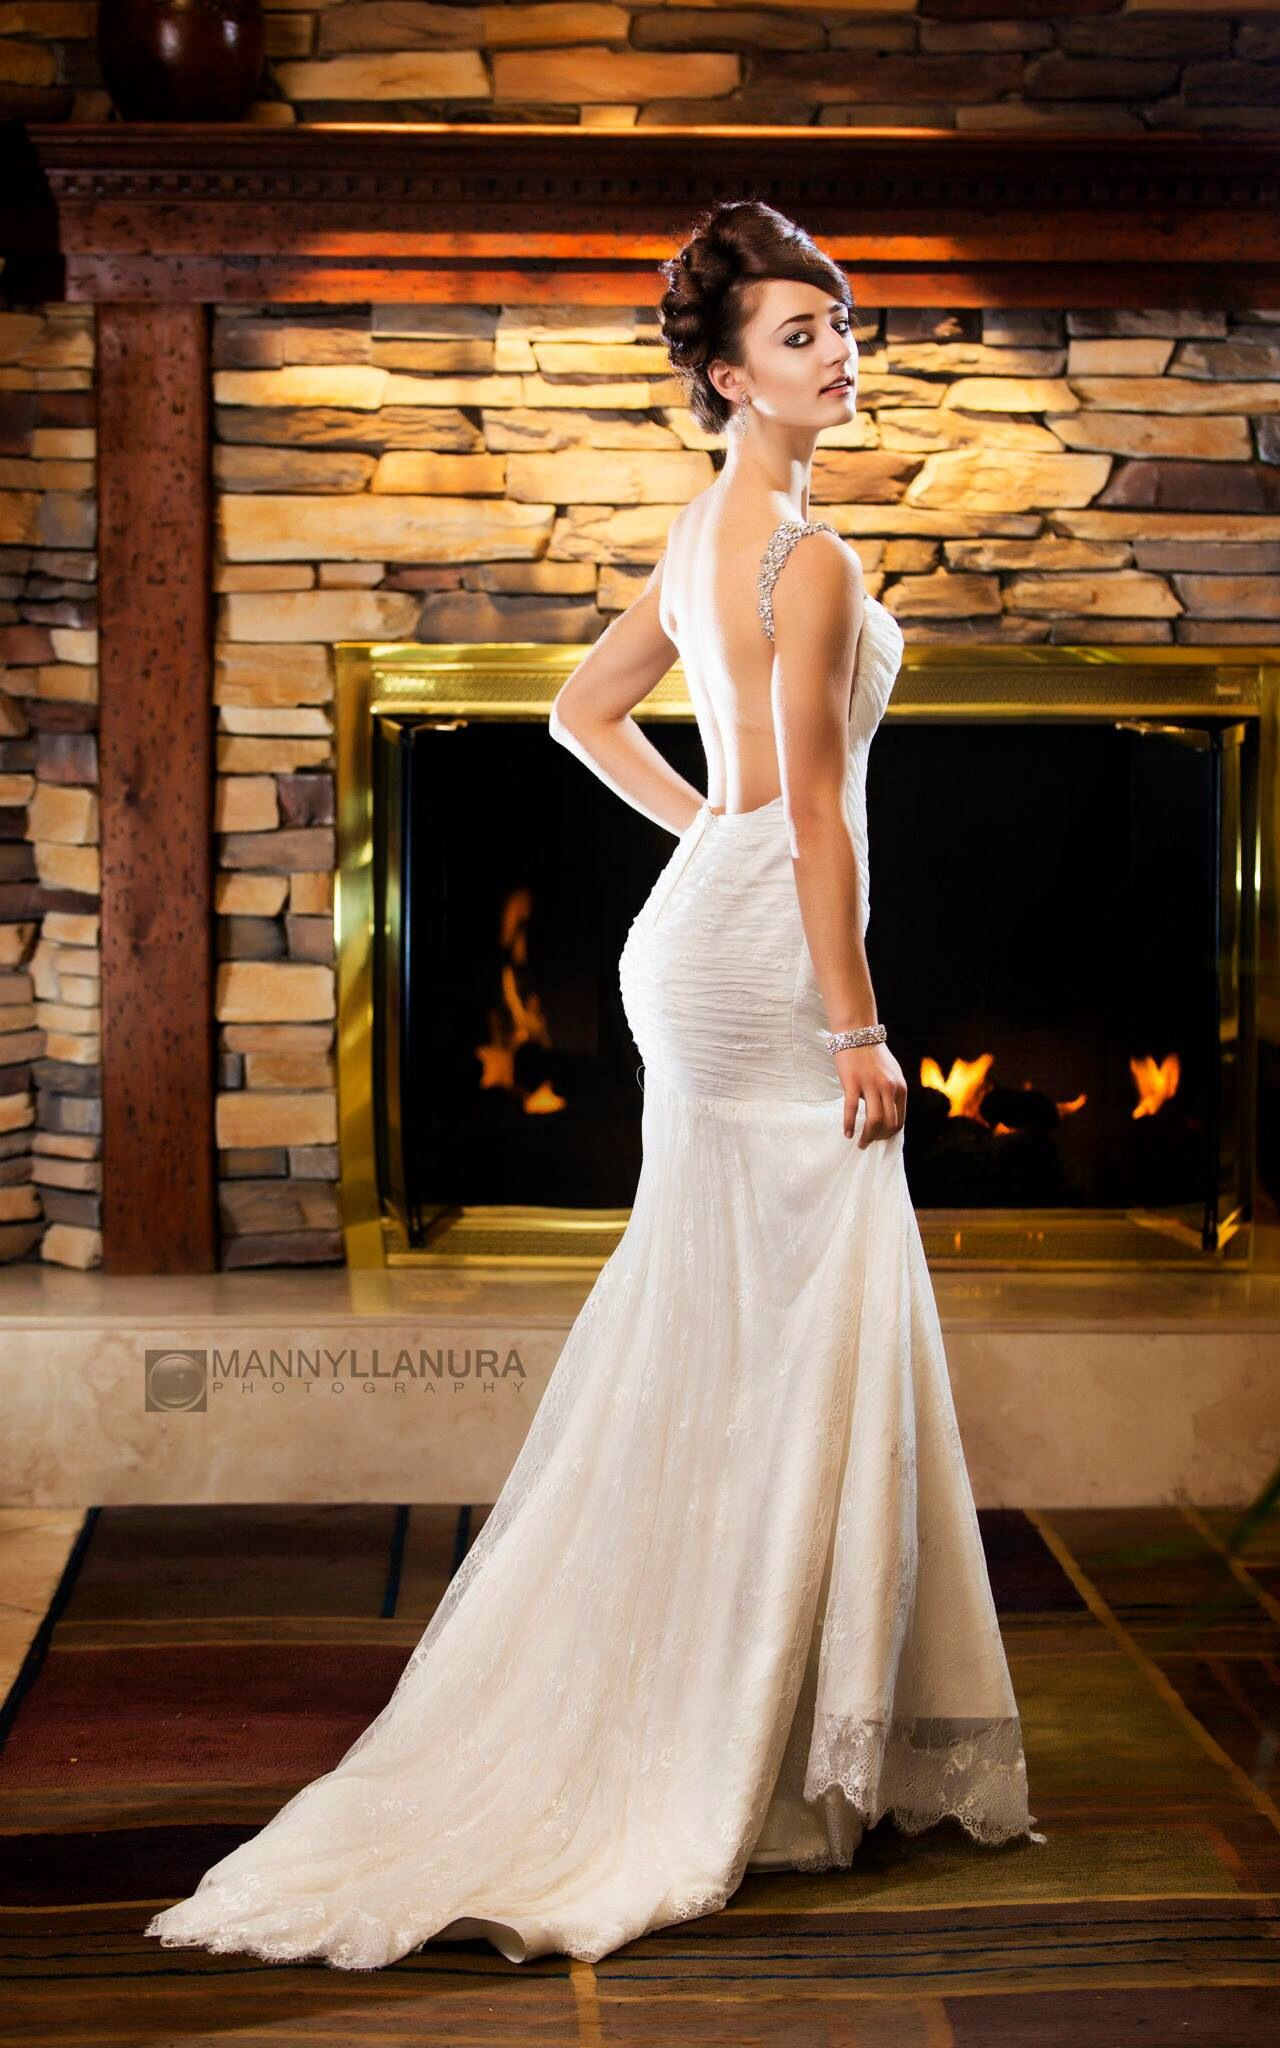 Gorgeous gown by Elyse Reuben. Styling and accessories by Sandra Nicole Designs.